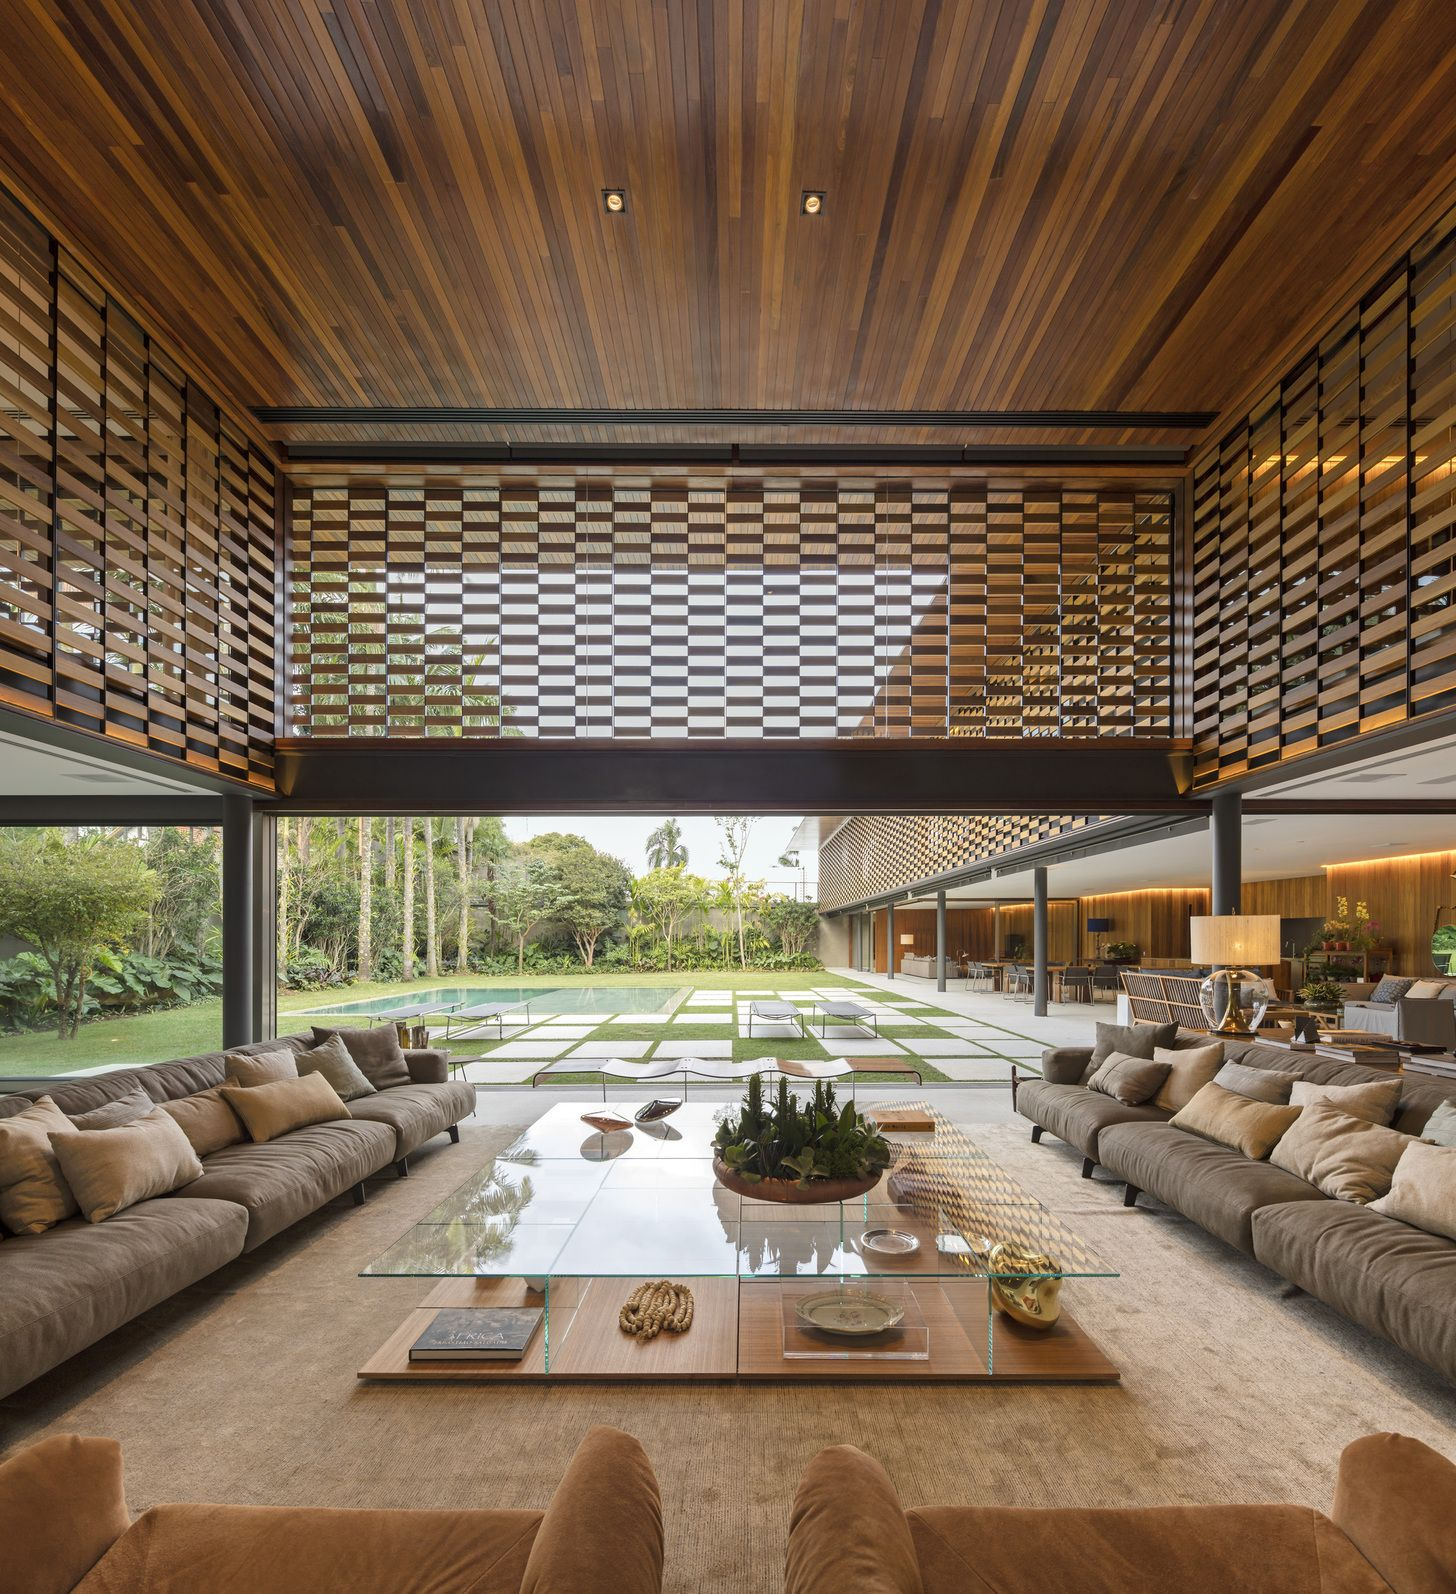 Lounge area partially shielded from the sun by a perforated